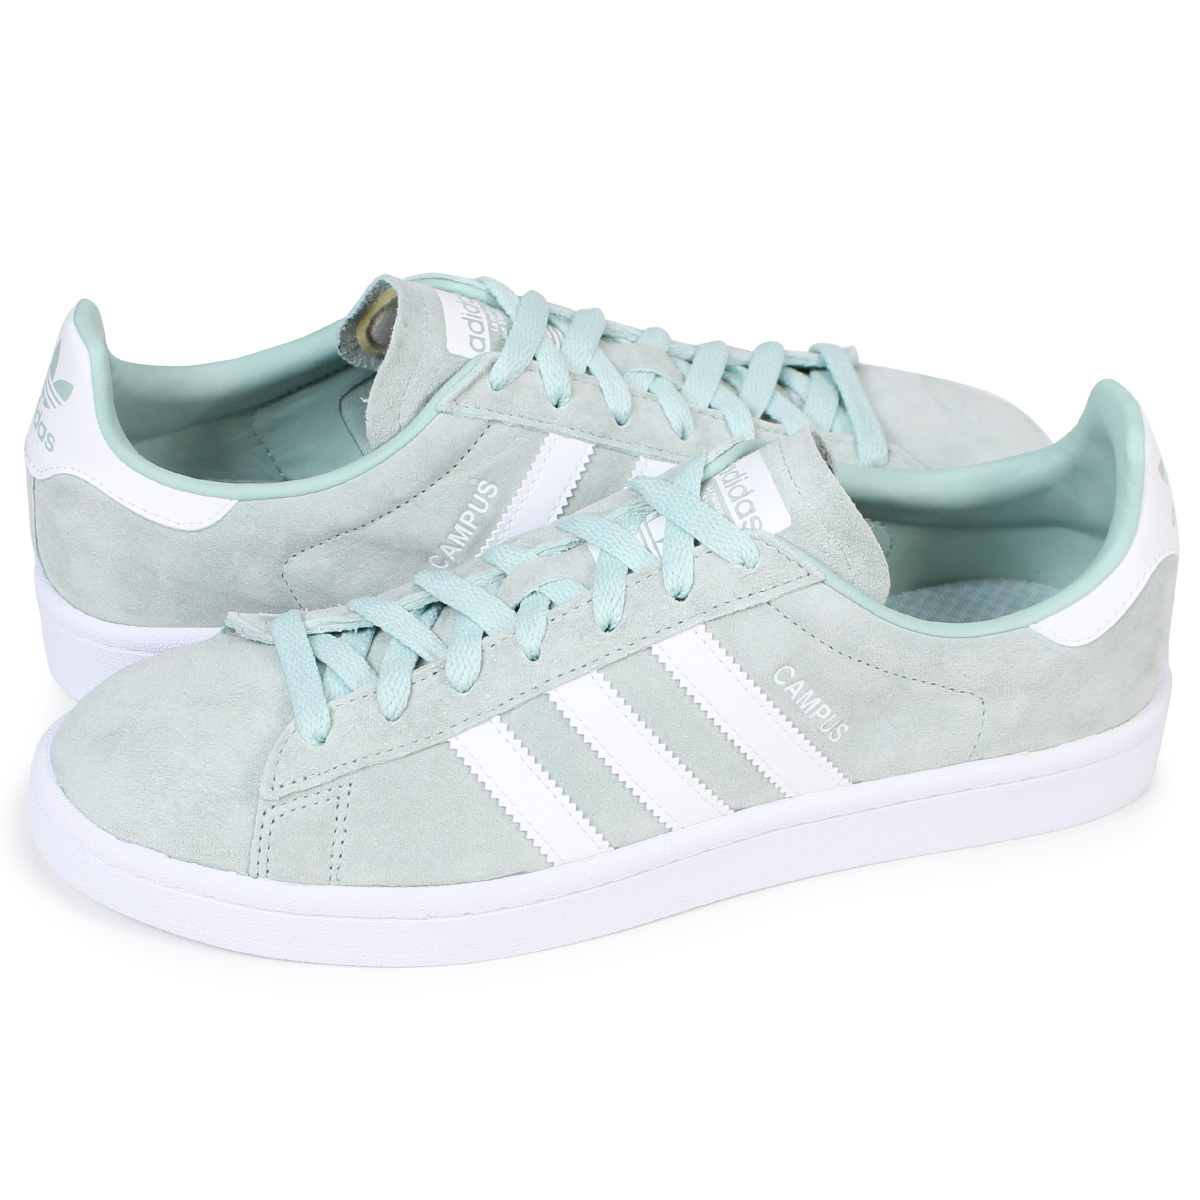 le dernier 7ab30 1c147 adidas originals CAMPUS Adidas campus sneakers men gap Dis DB0982 shoes  green [load planned Shinnyu load in reservation product 12/26 containing]